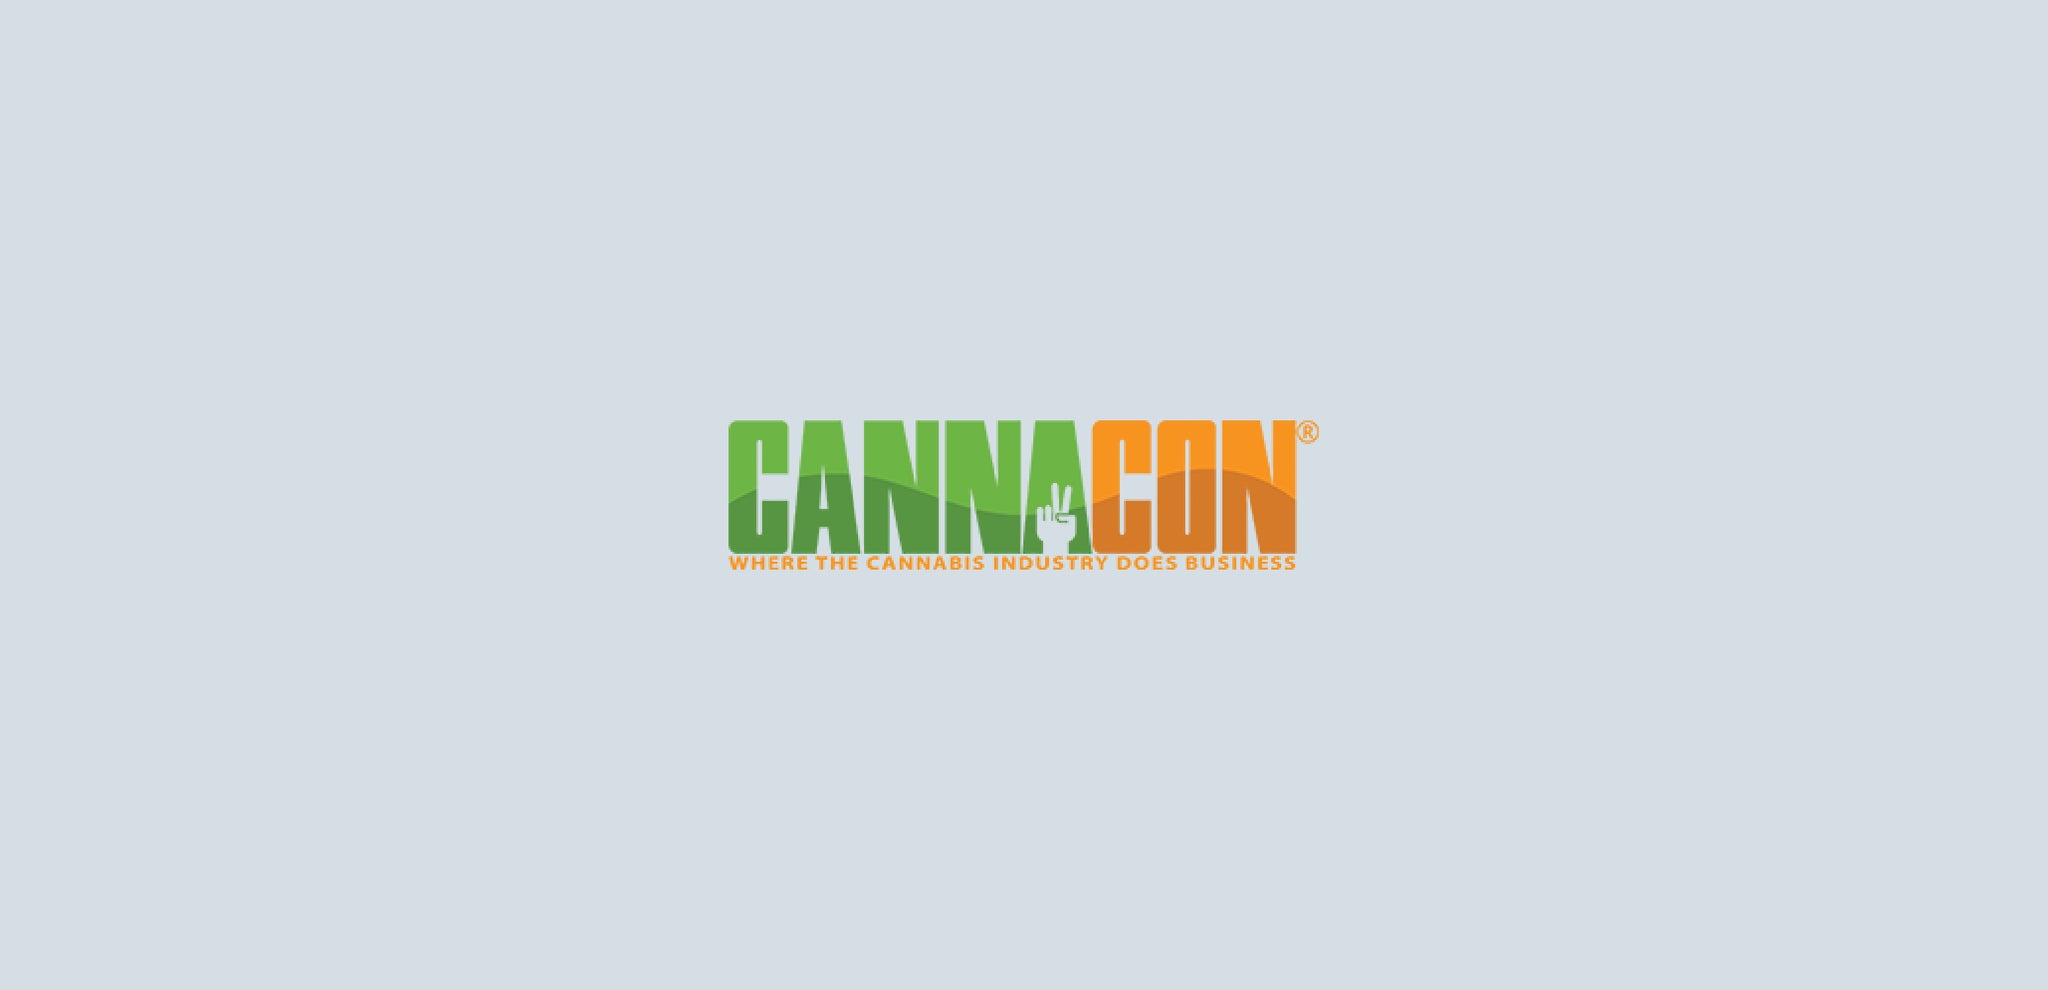 We will be at Boston CannaCon July 27th